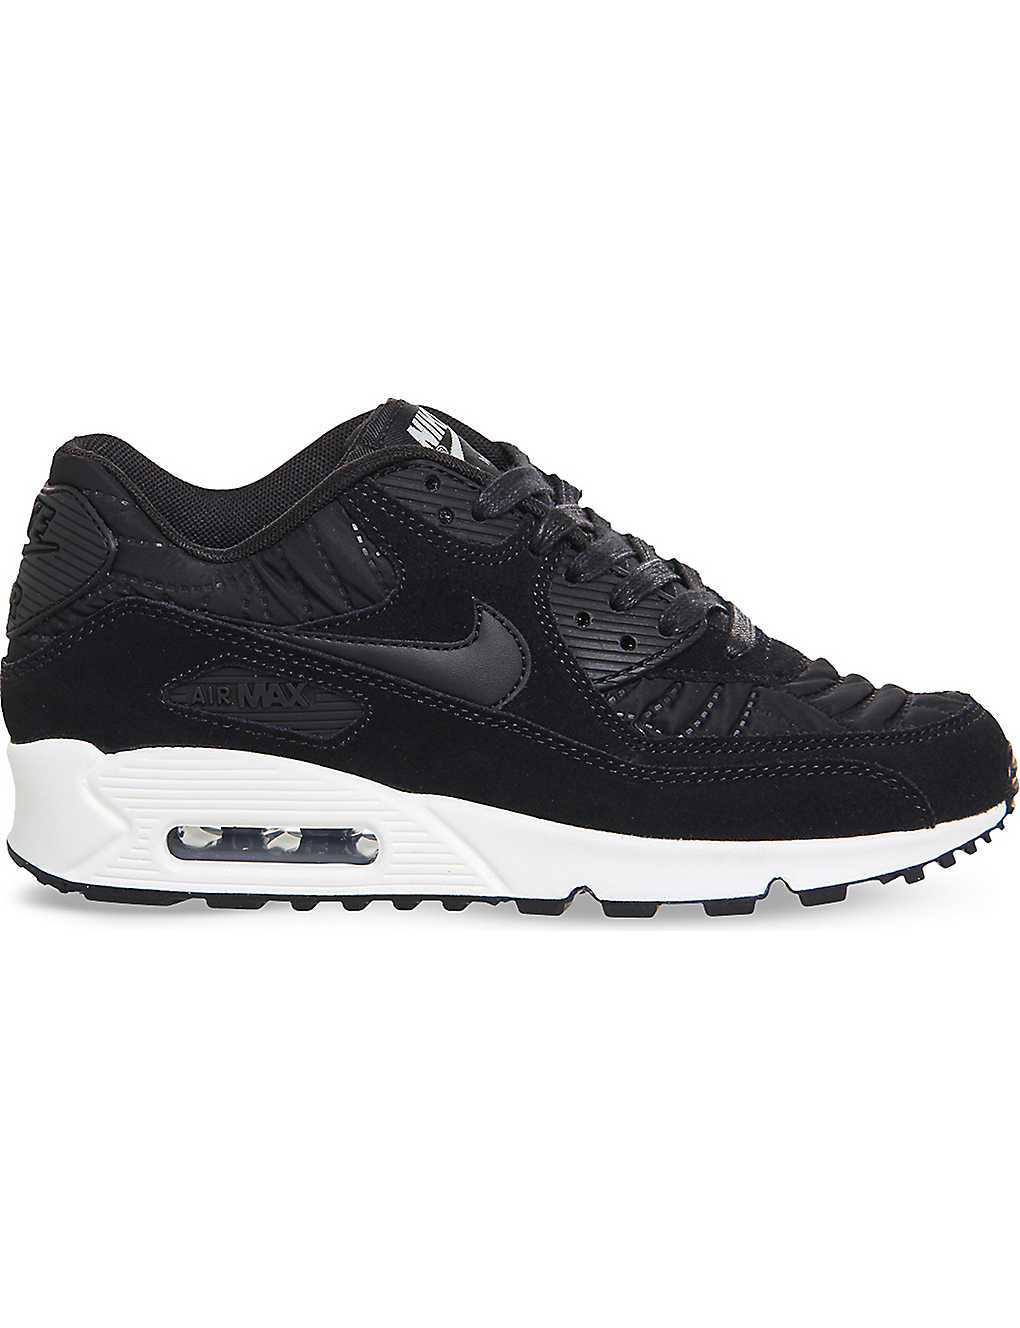 low priced 7c742 49483 NIKE Air Max 90 quilted suede trainers